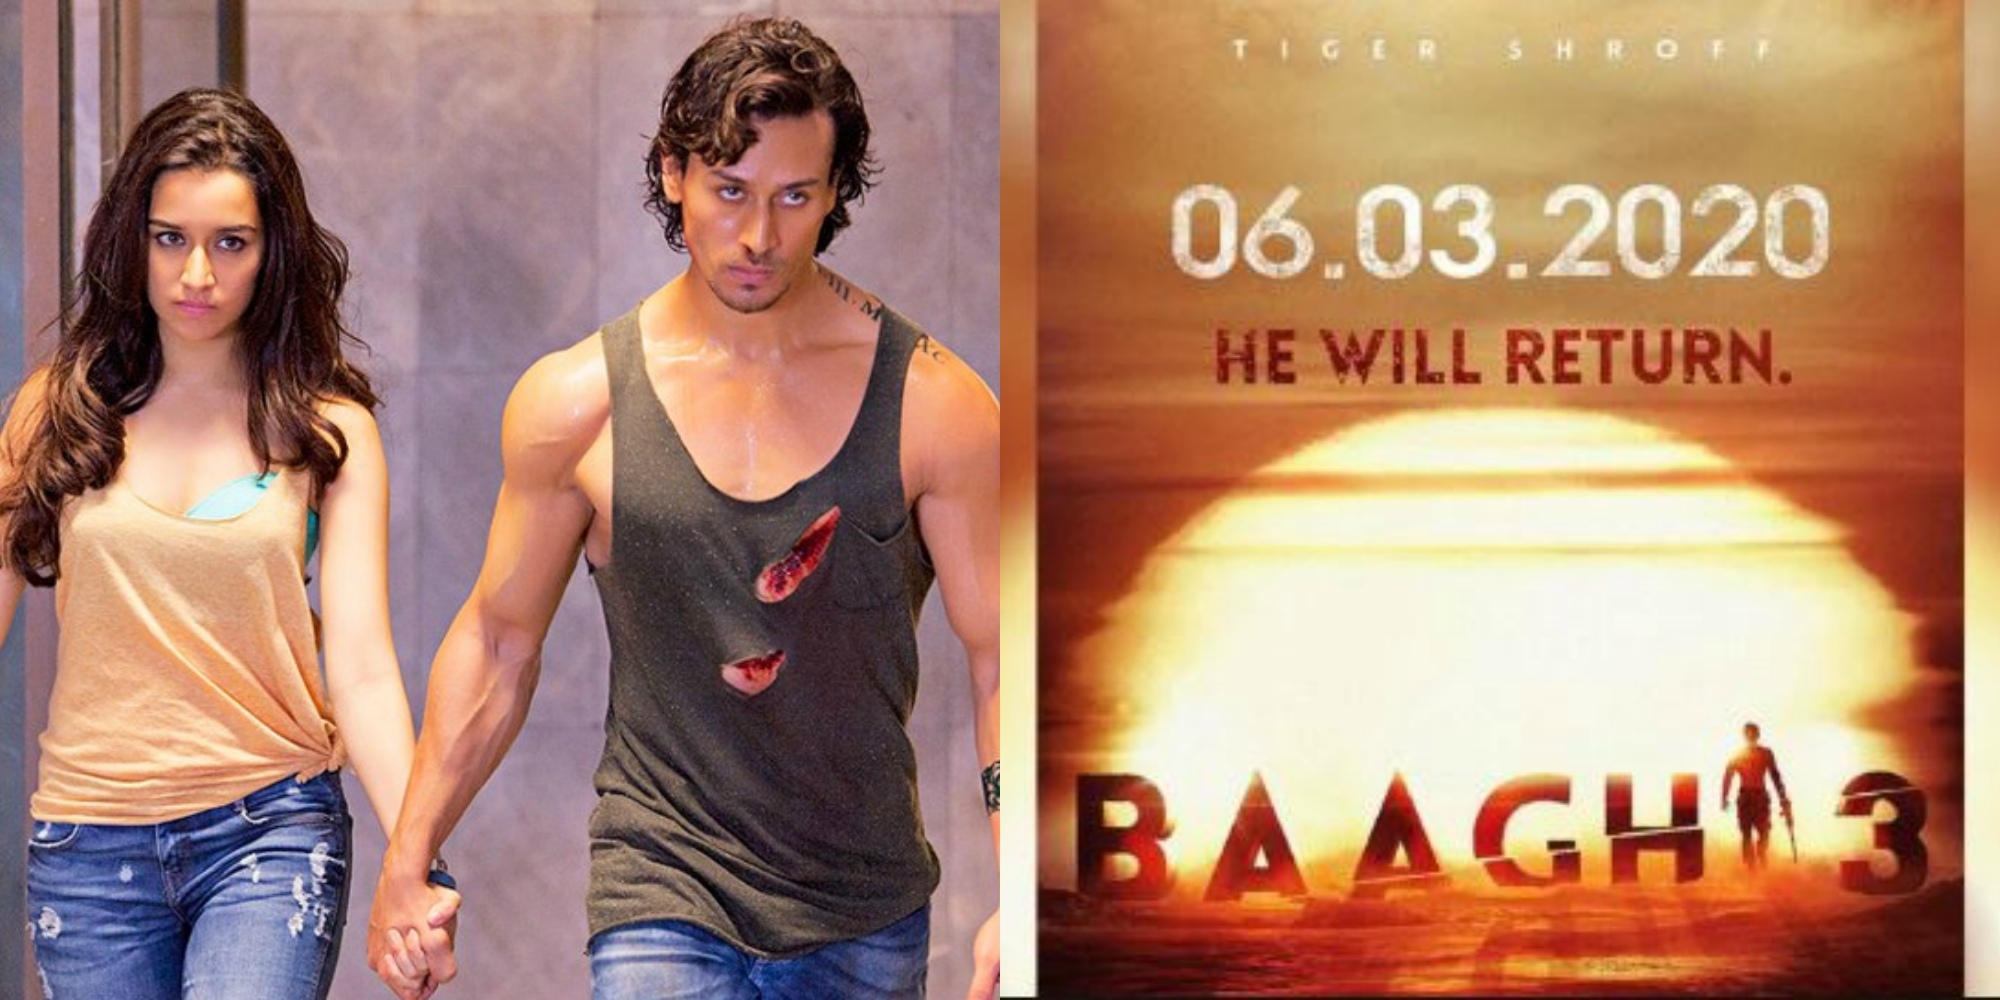 Riteish Deshmukh Joins 'Ek Villain' Co-Star Shraddha Kapoor In Upcoming 'Baaghi 3'